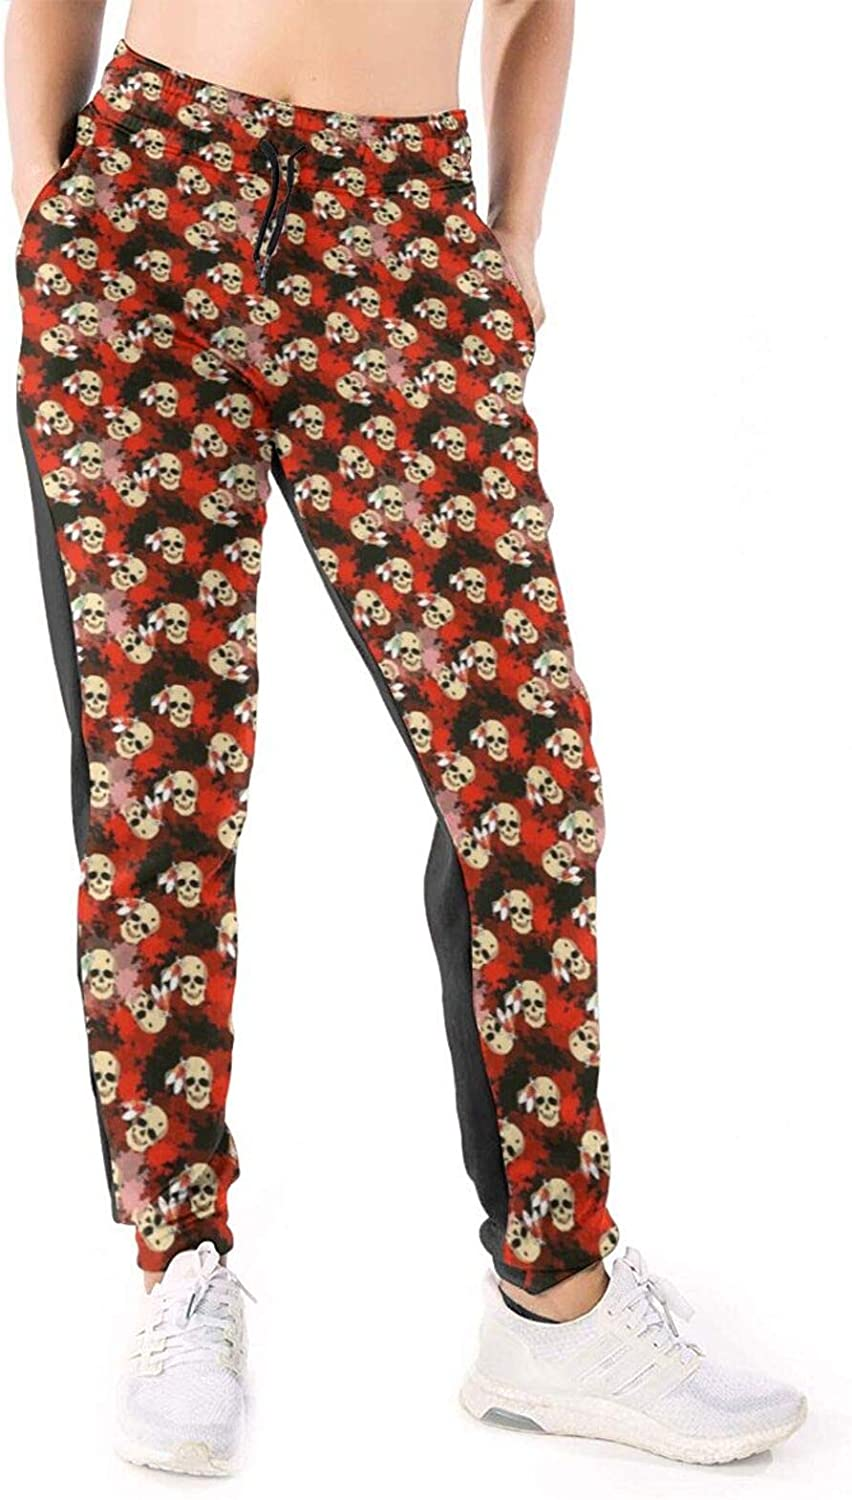 Women Joggers Pants Indian Tribe Headress Skull Athletic Sweatpants with Pockets Casual Trousers Baggy